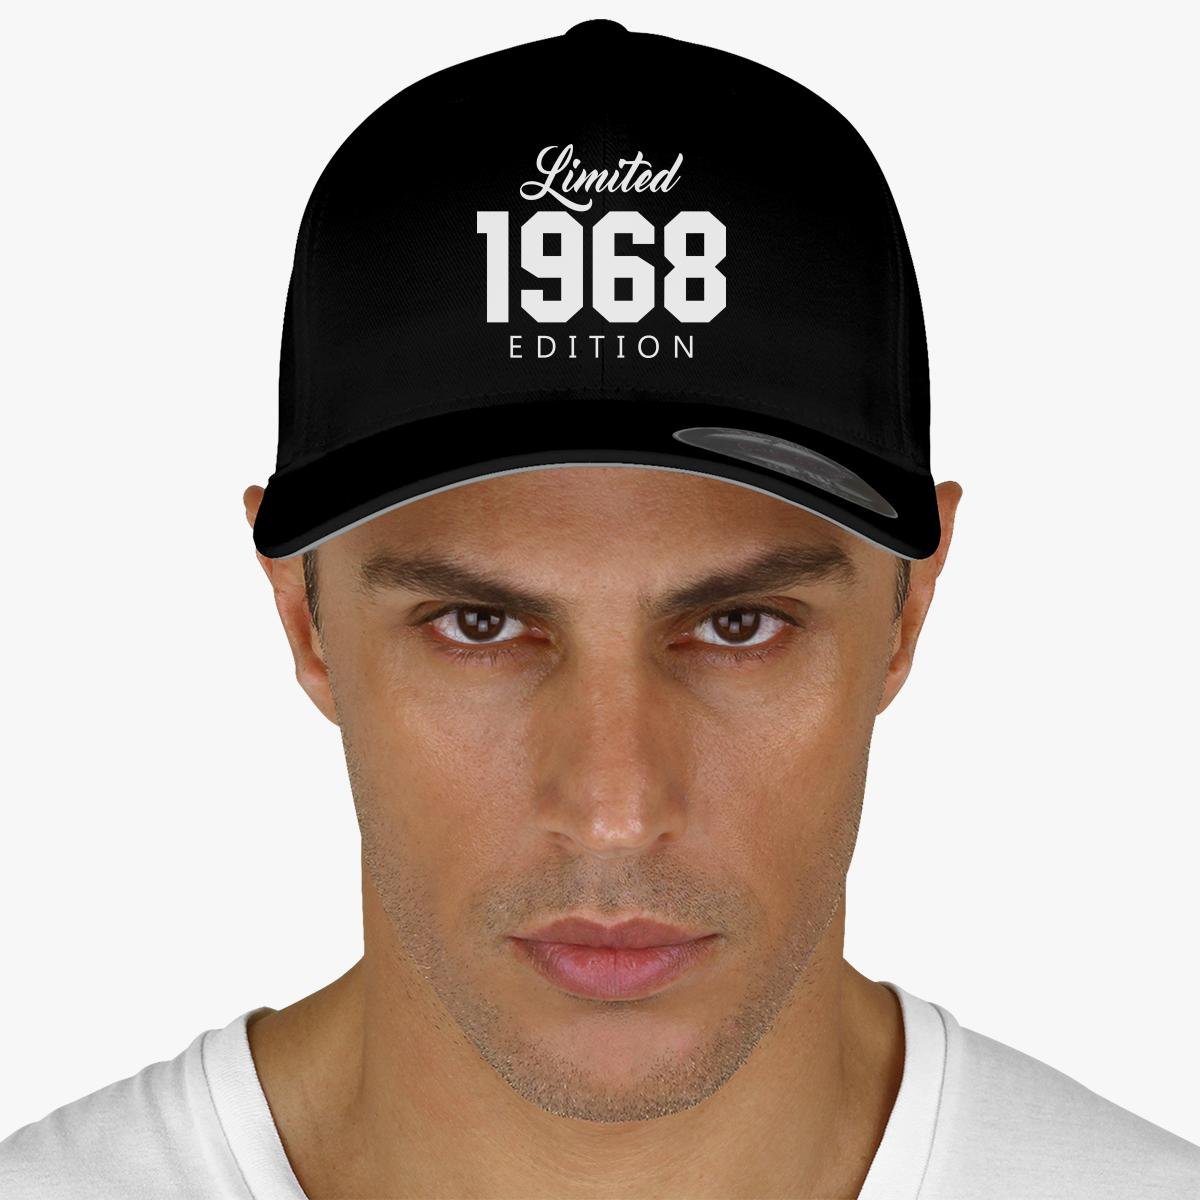 1968 Limited Edition Birthday Embroidered Baseball Cap